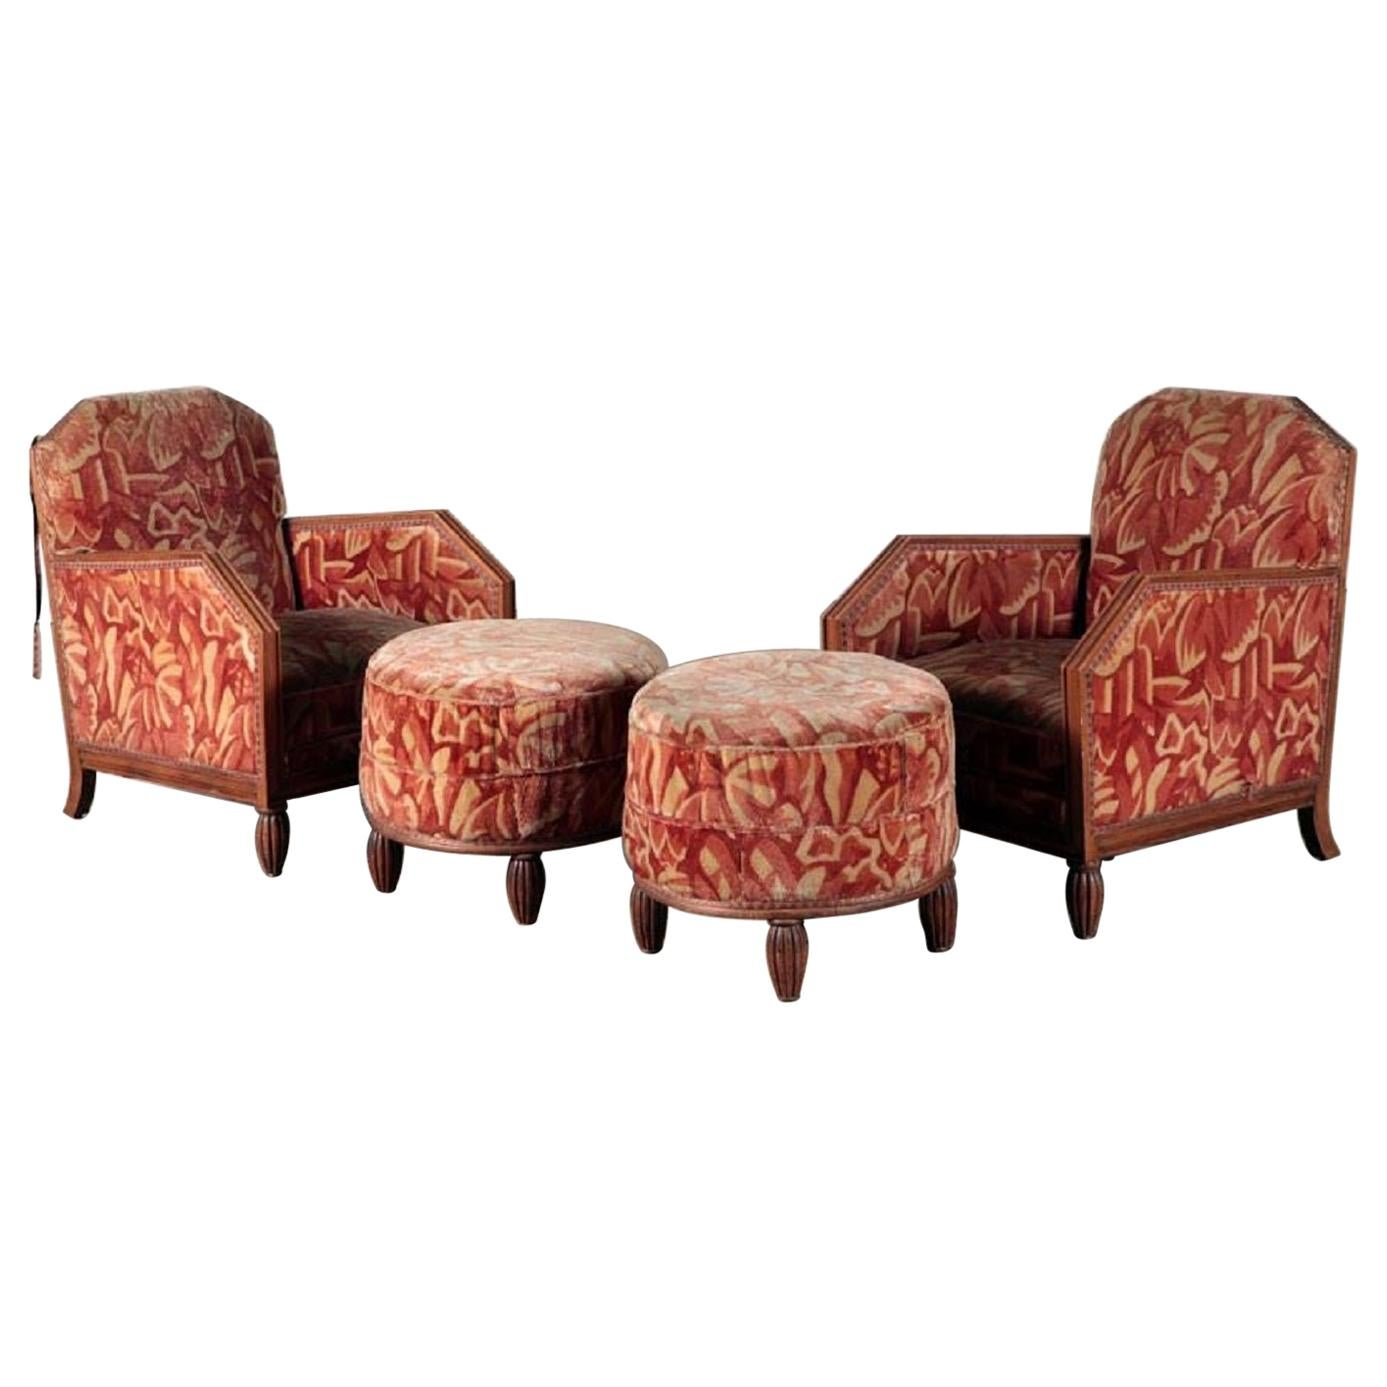 1930s Art Deco Lounge Chairs with Matching Ottomans Manner of Paul Follot, Pair